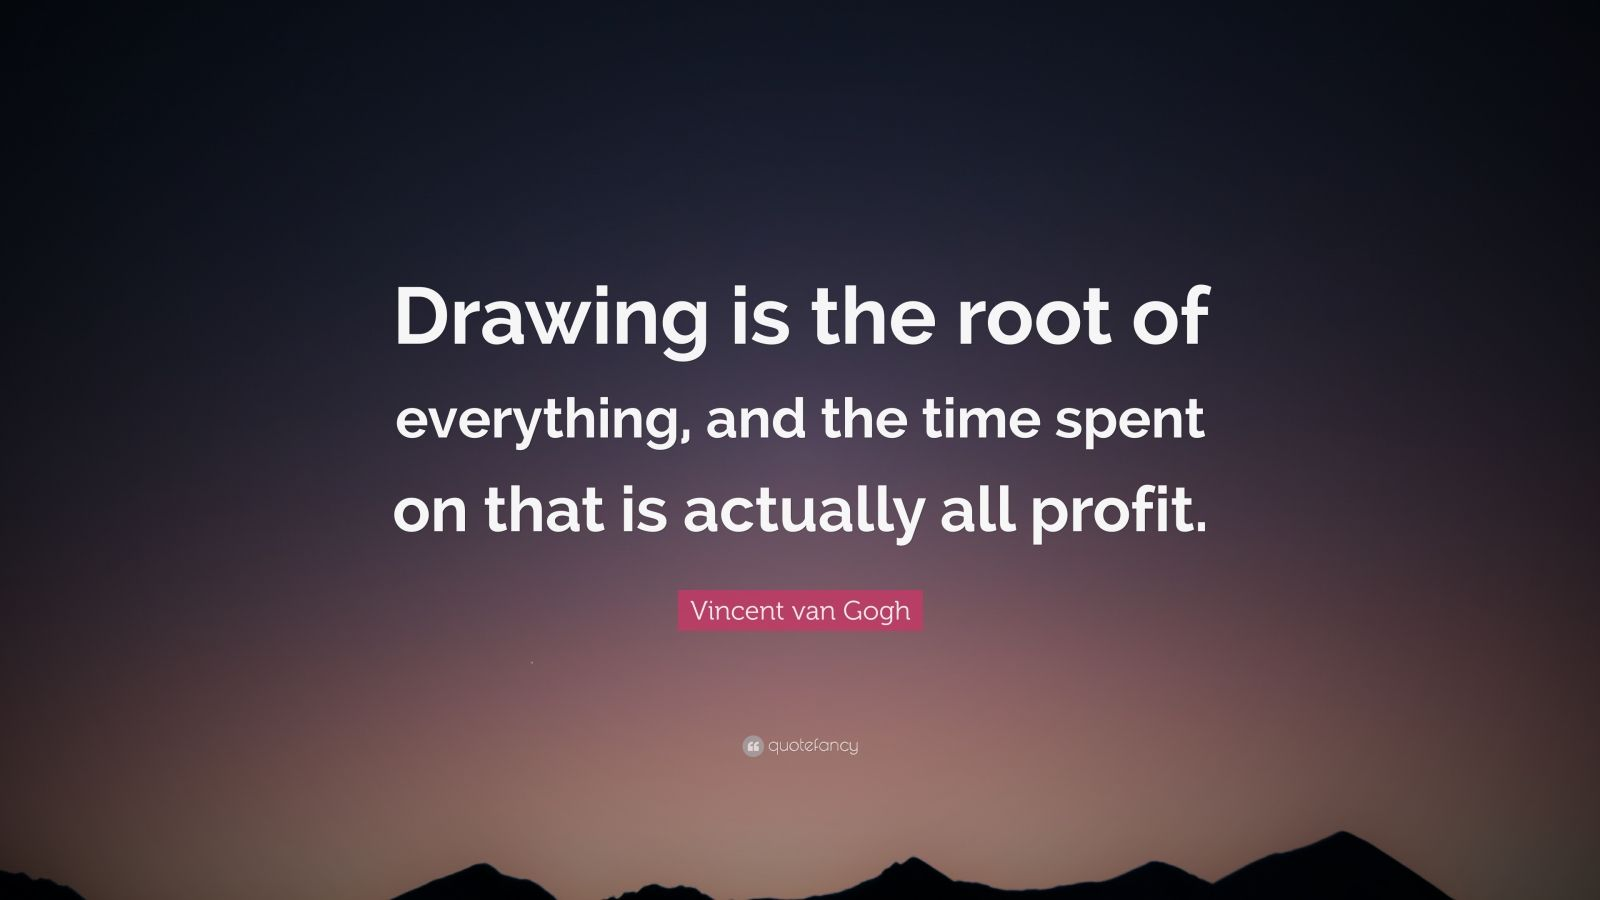 """Vincent van Gogh Quote: """"Drawing is the root of everything, and the time spent on that is actually all profit."""""""